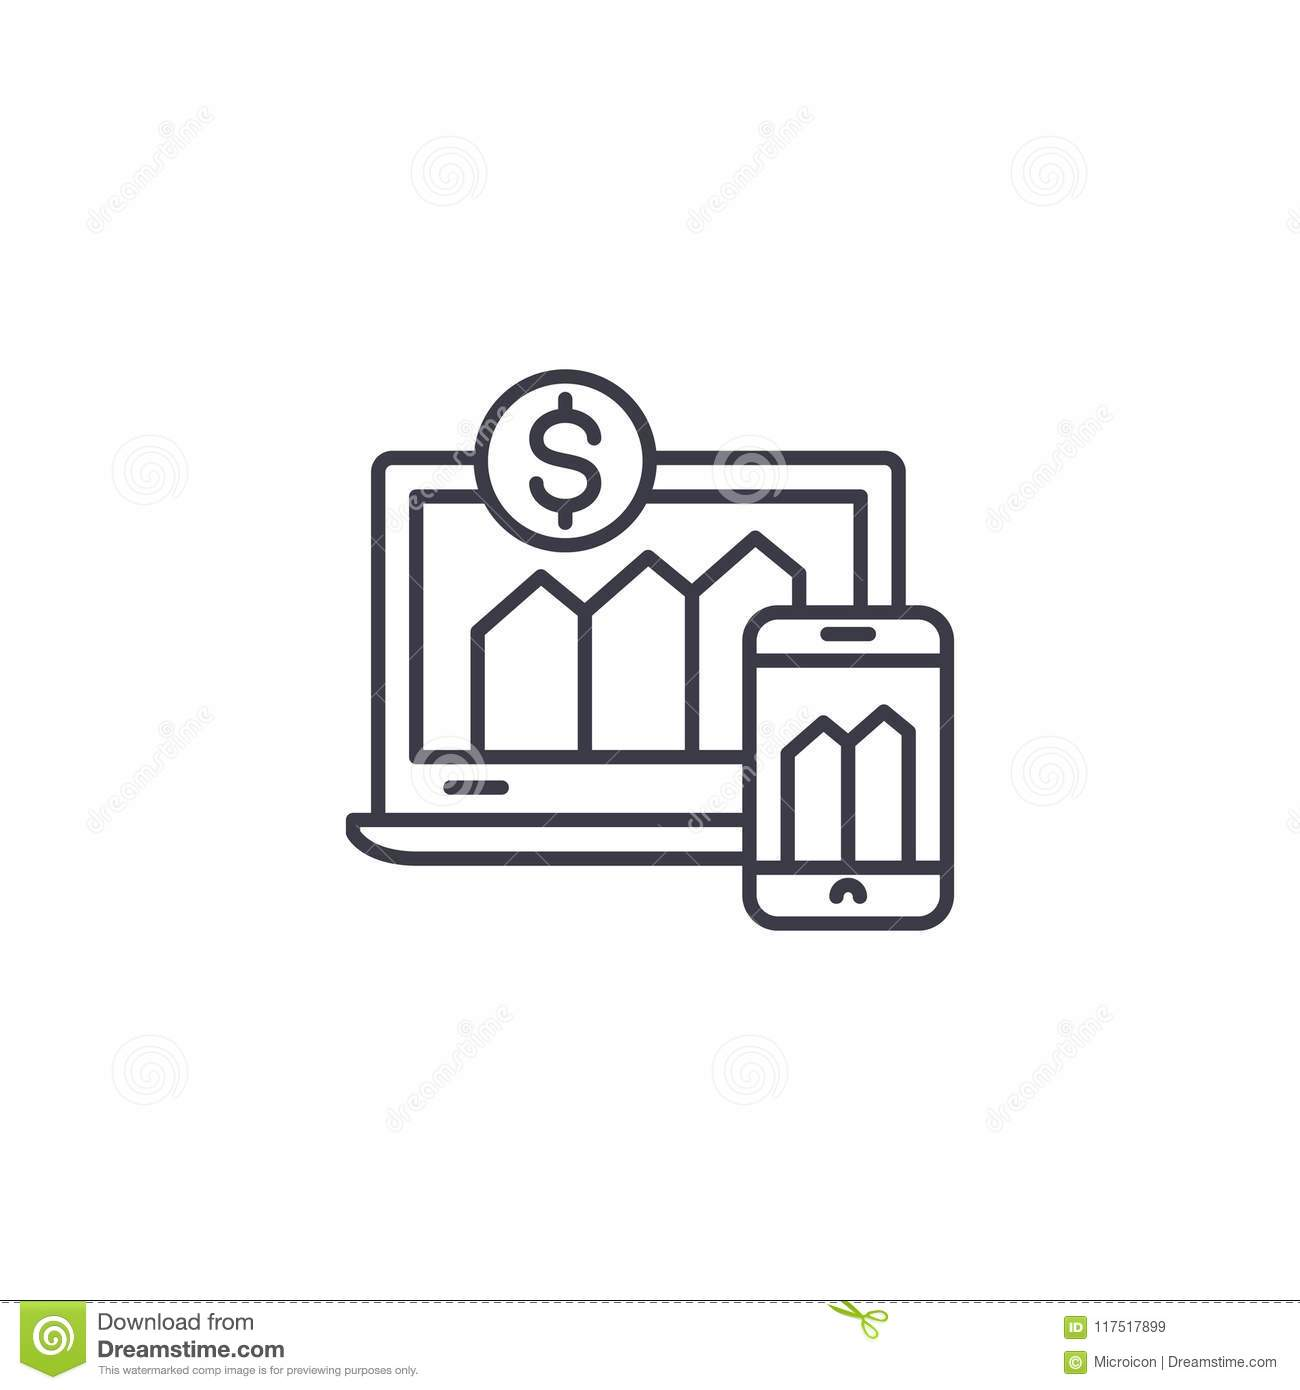 Financial indicators linear icon concept. Financial indicators line vector sign, symbol, illustration.